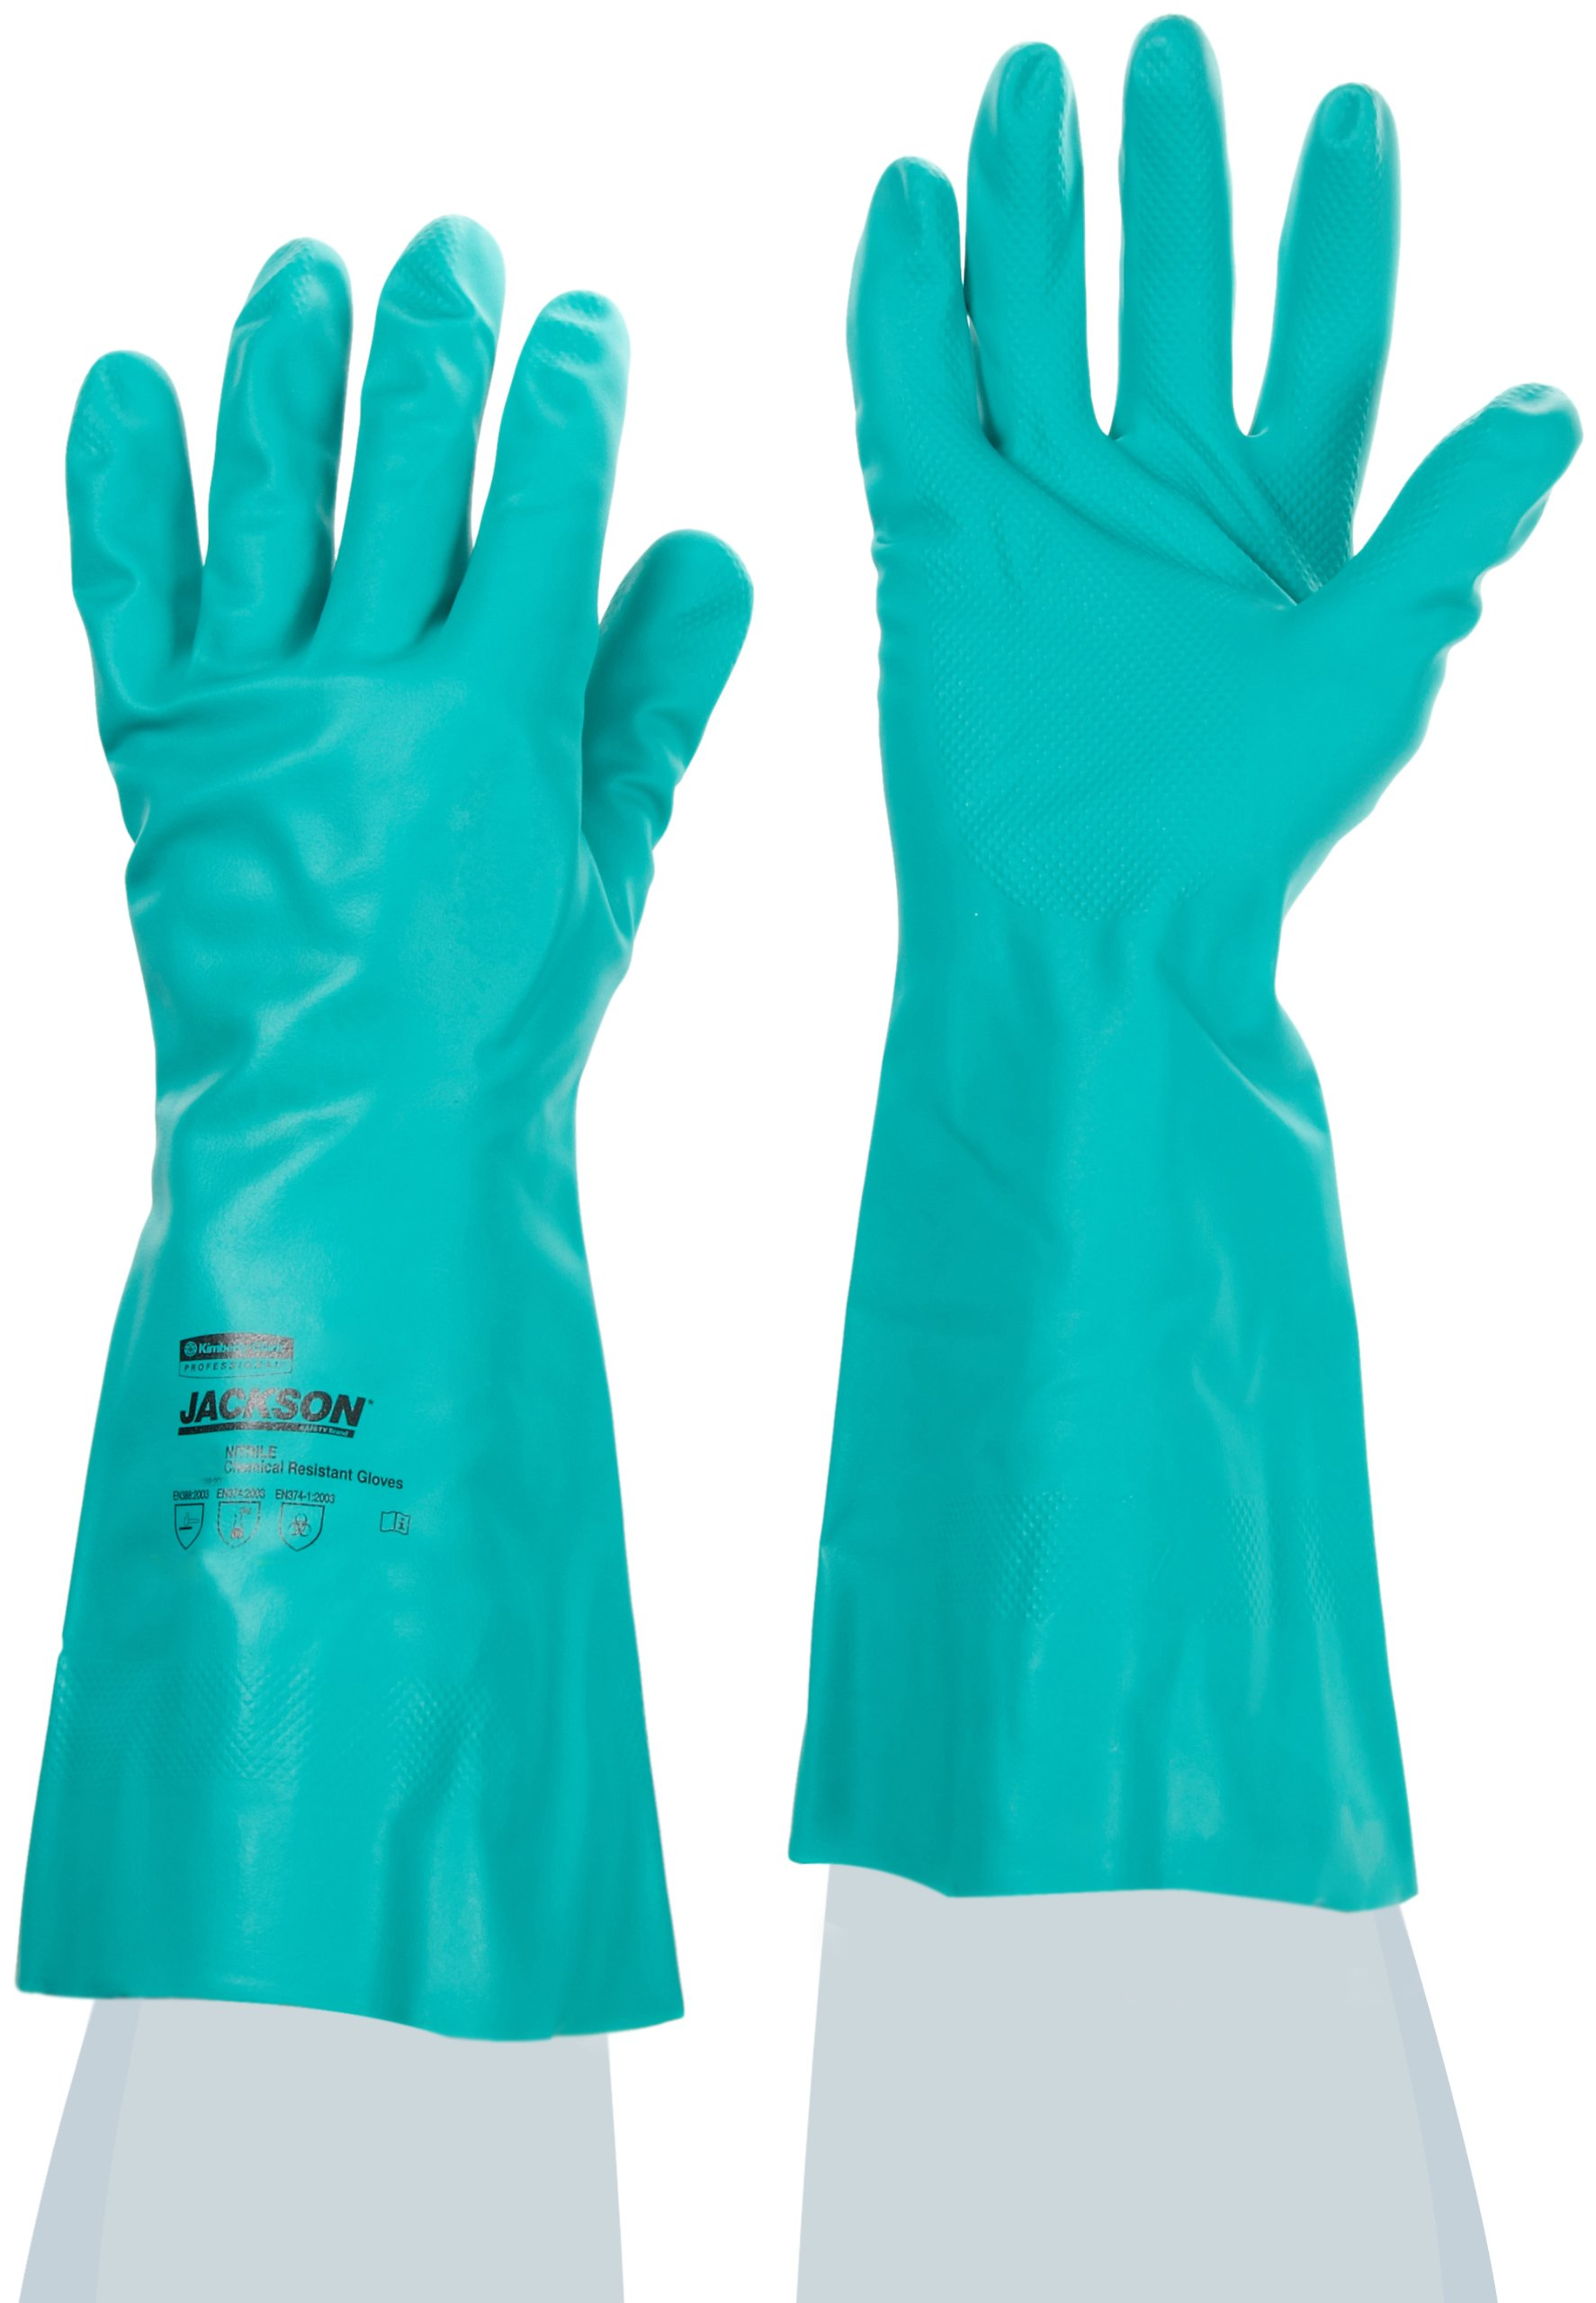 Jackson Safety G80 Nitrile Glove, Chemical Resistant, 15 mil Thickness, 13'' Length, X-Large, Green (Case of 60 Pairs)